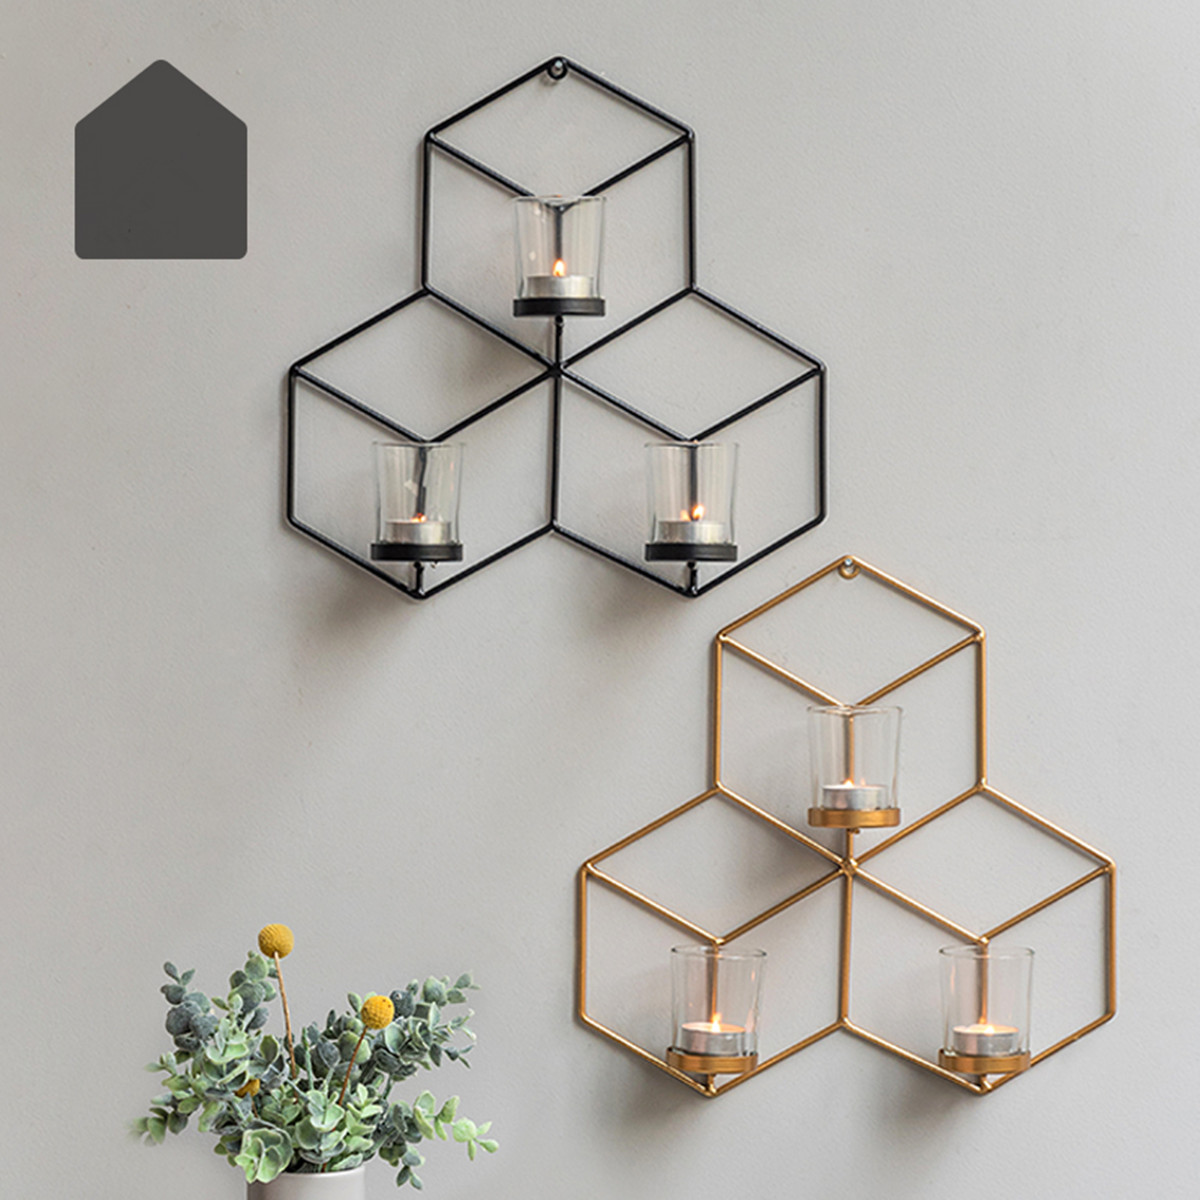 Candlestick Metal 3D Geometric Nordic Modern Style Wall ... on Metal Candle Holders For Wall id=68692